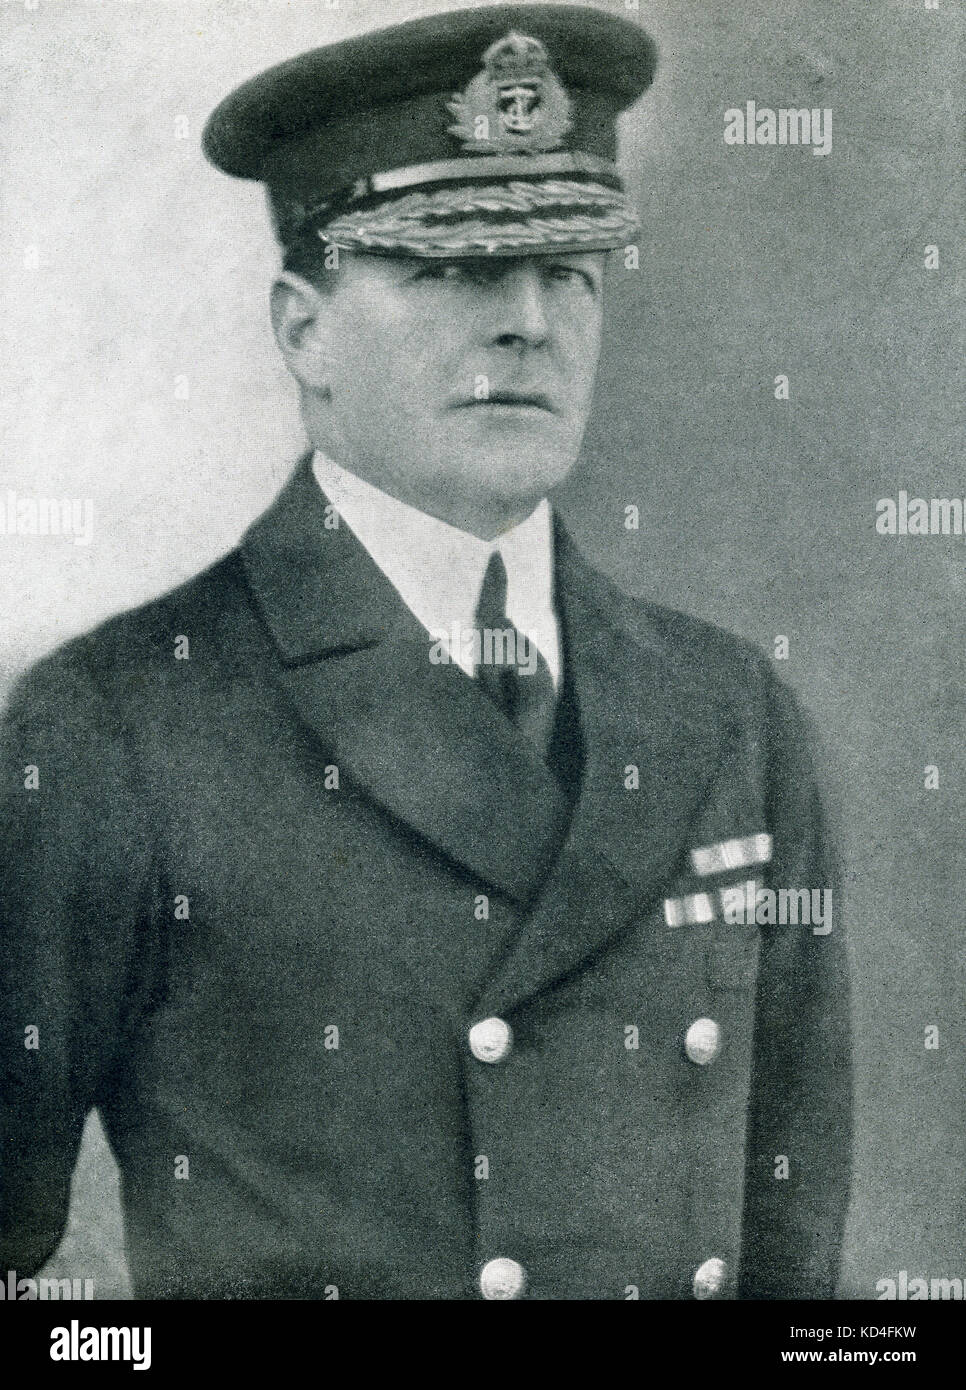 Sir David Beatty, who commanded the British battle cruiser squadron at the Battle of Jutland, considered the only - Stock Image